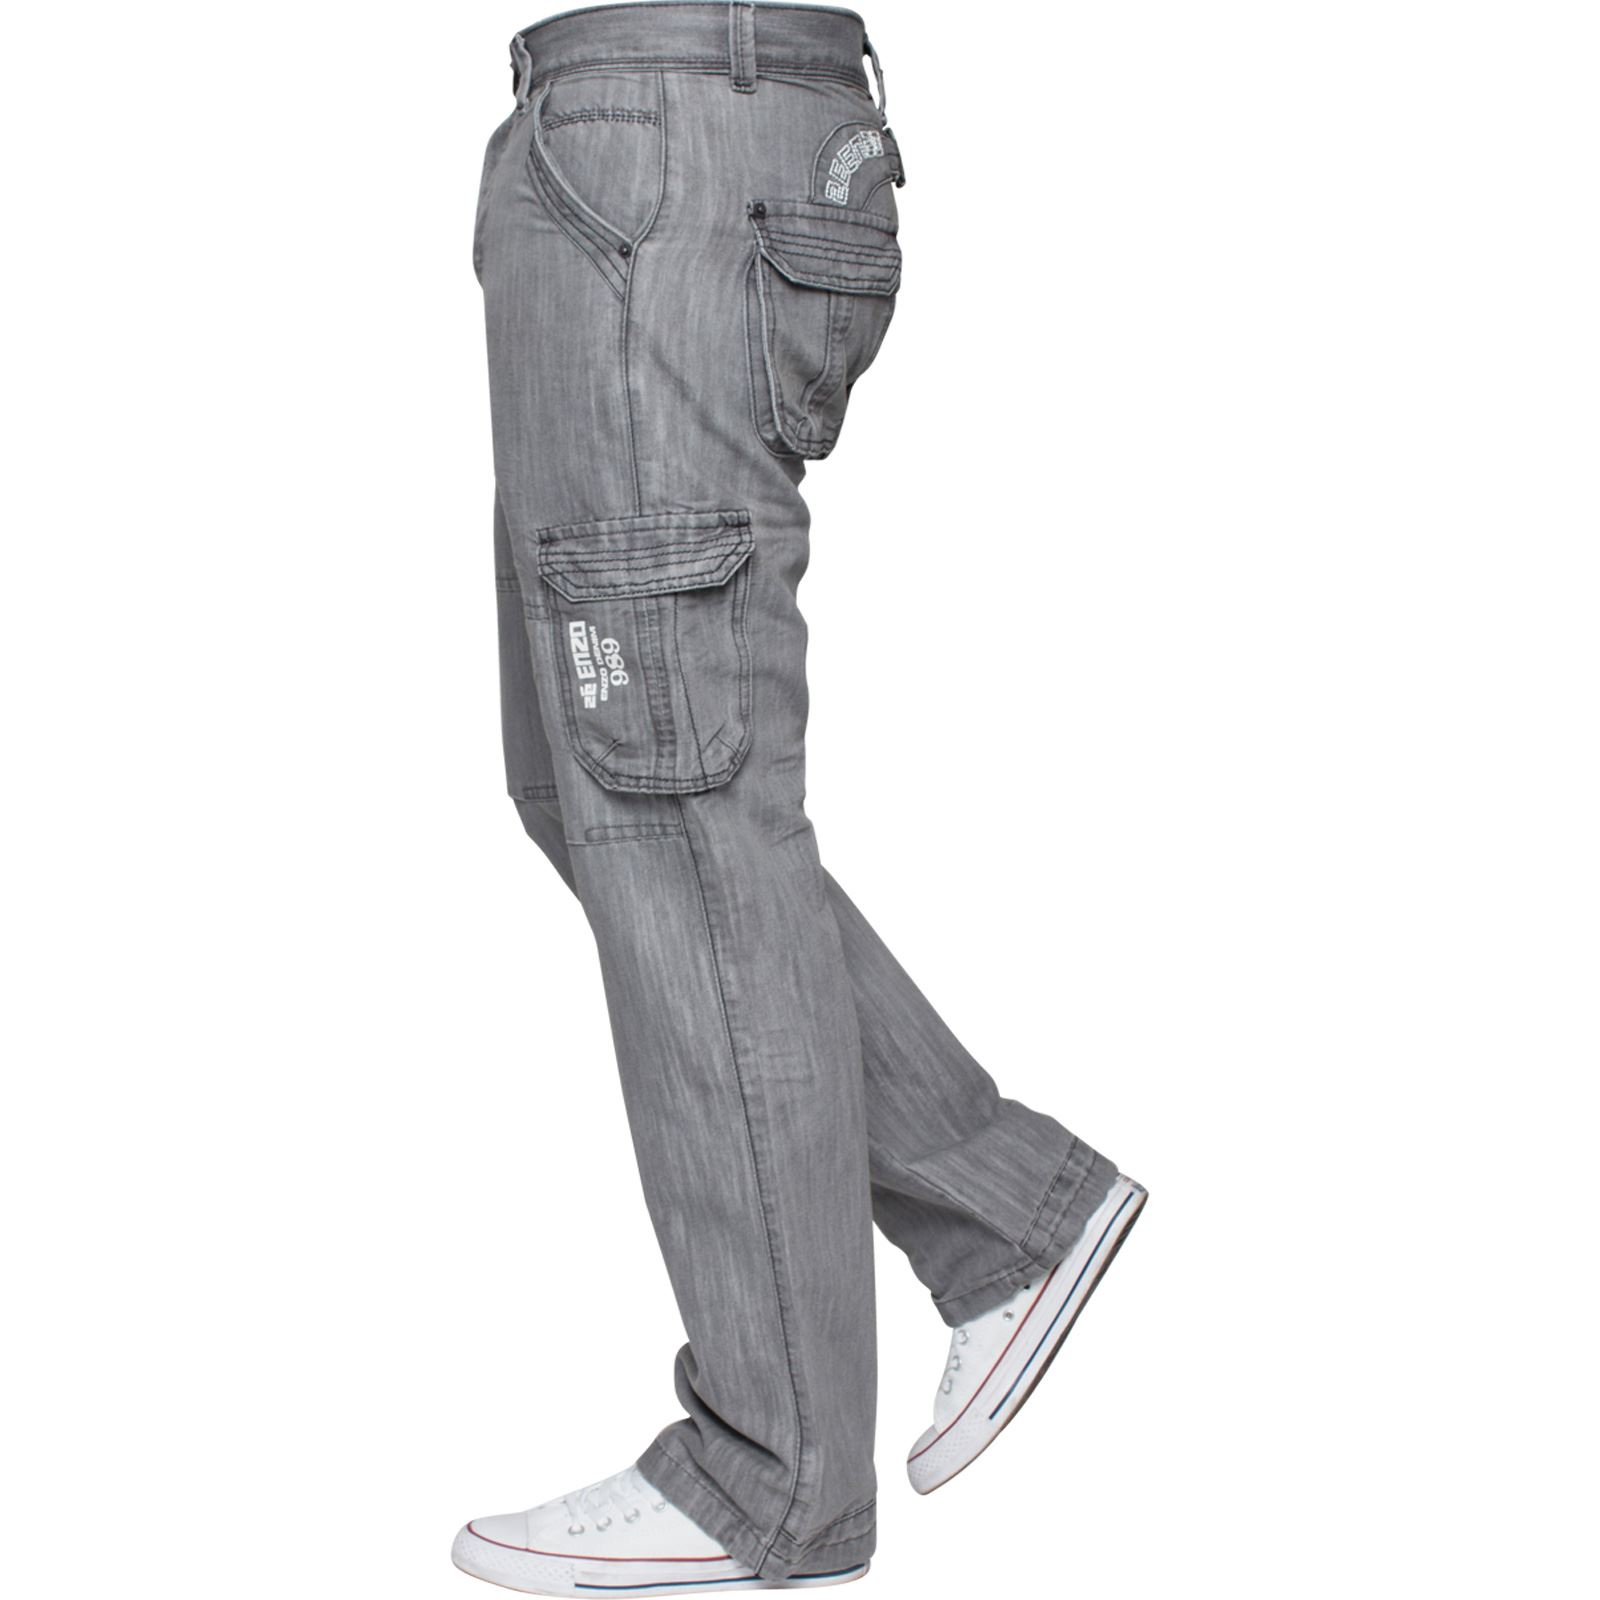 Enzo-Mens-Cargo-Combat-Trousers-Jeans-Work-Casual-Denim-Pants-Big-Tall-All-Waist thumbnail 25